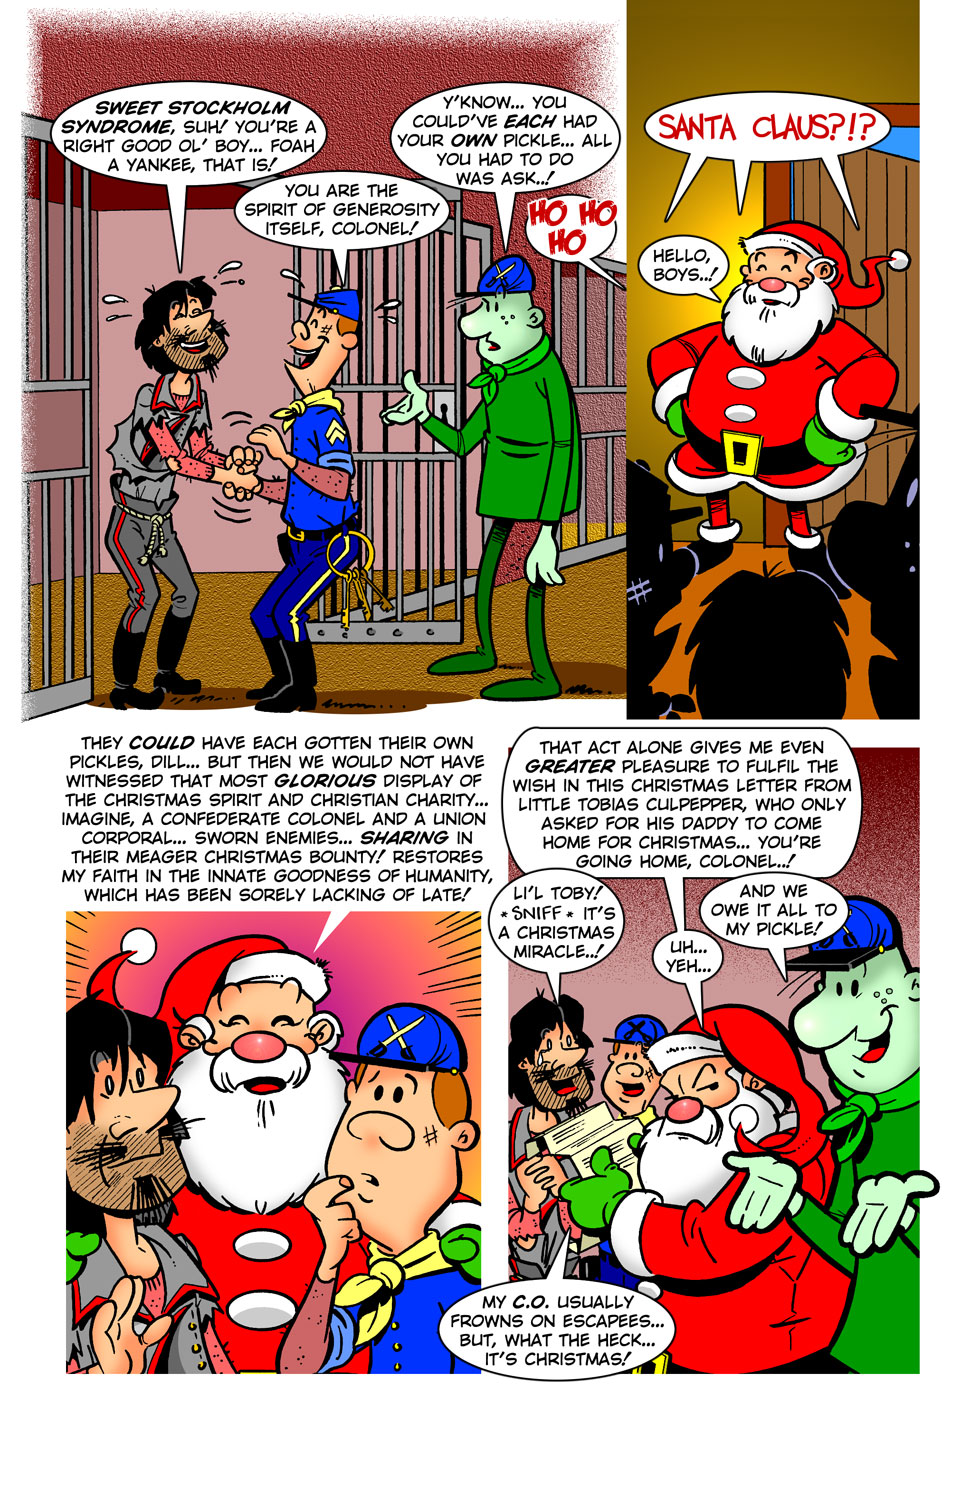 Dill Gherkin And The Legend Of the Christmas Pickle — pg 32